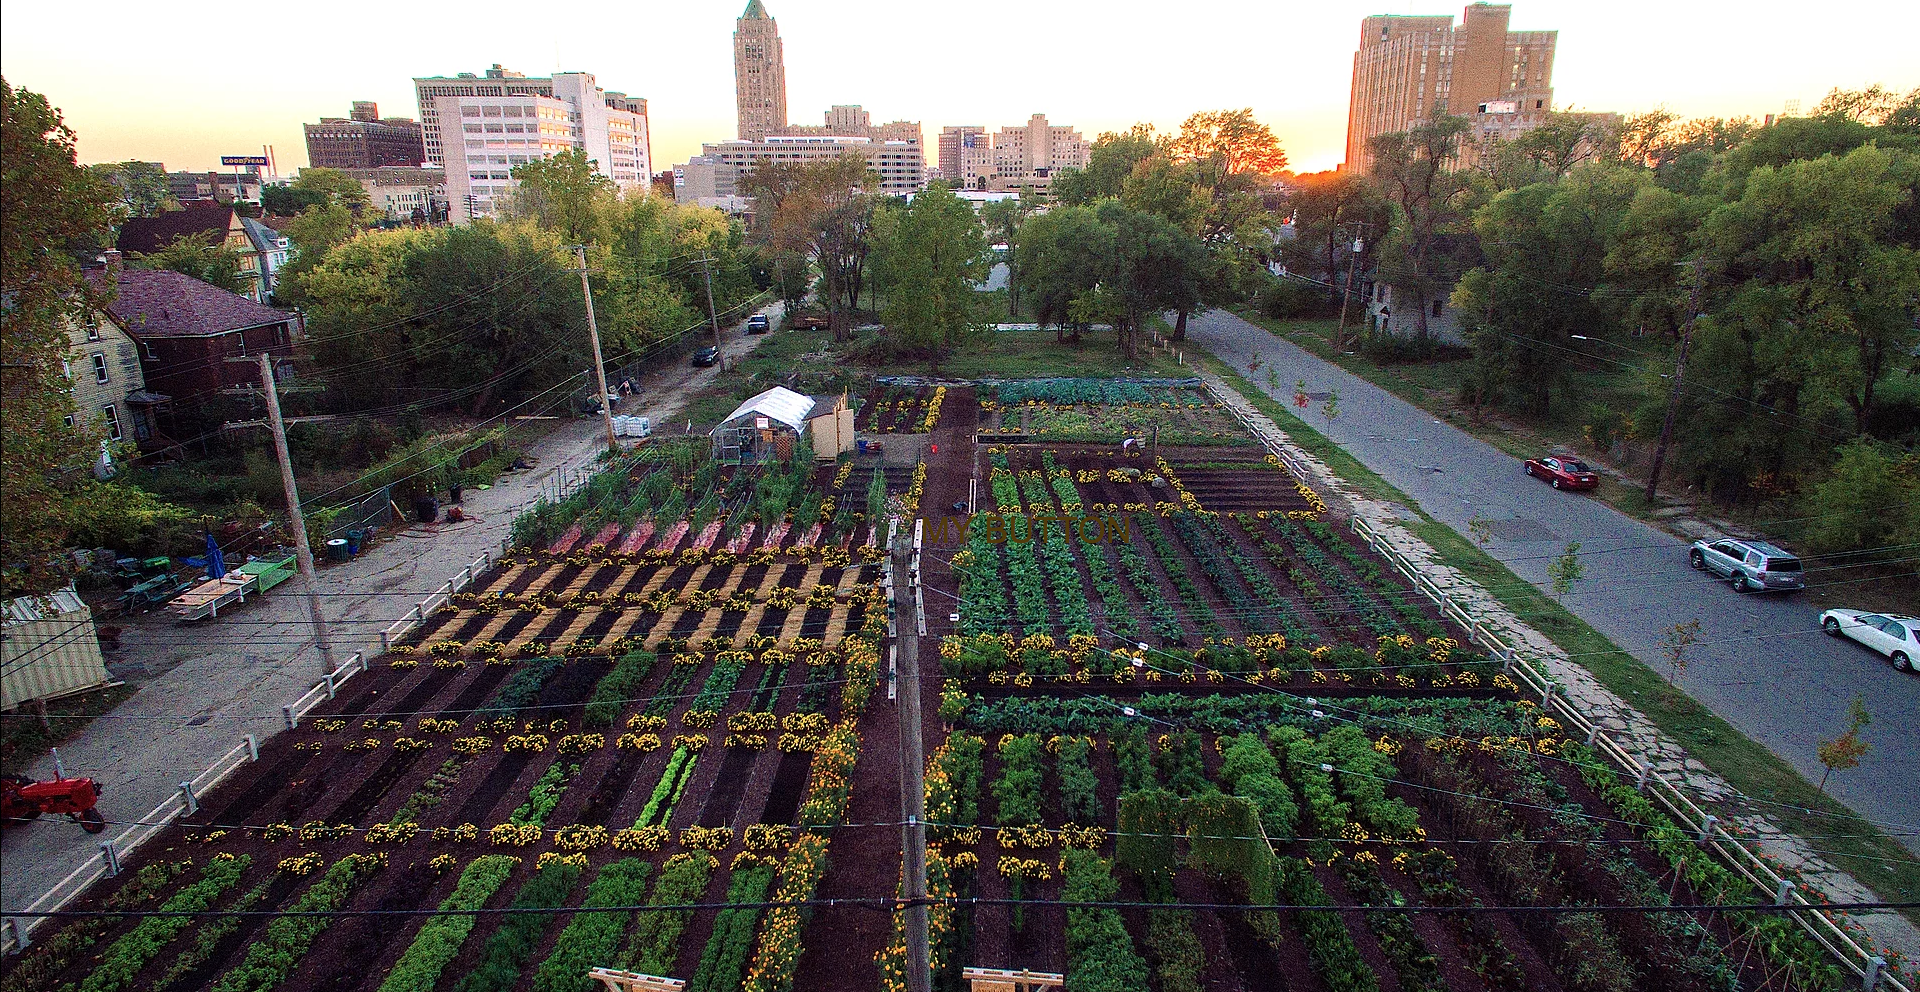 Photo courtesy of Michigan Urban Farming Initiative.